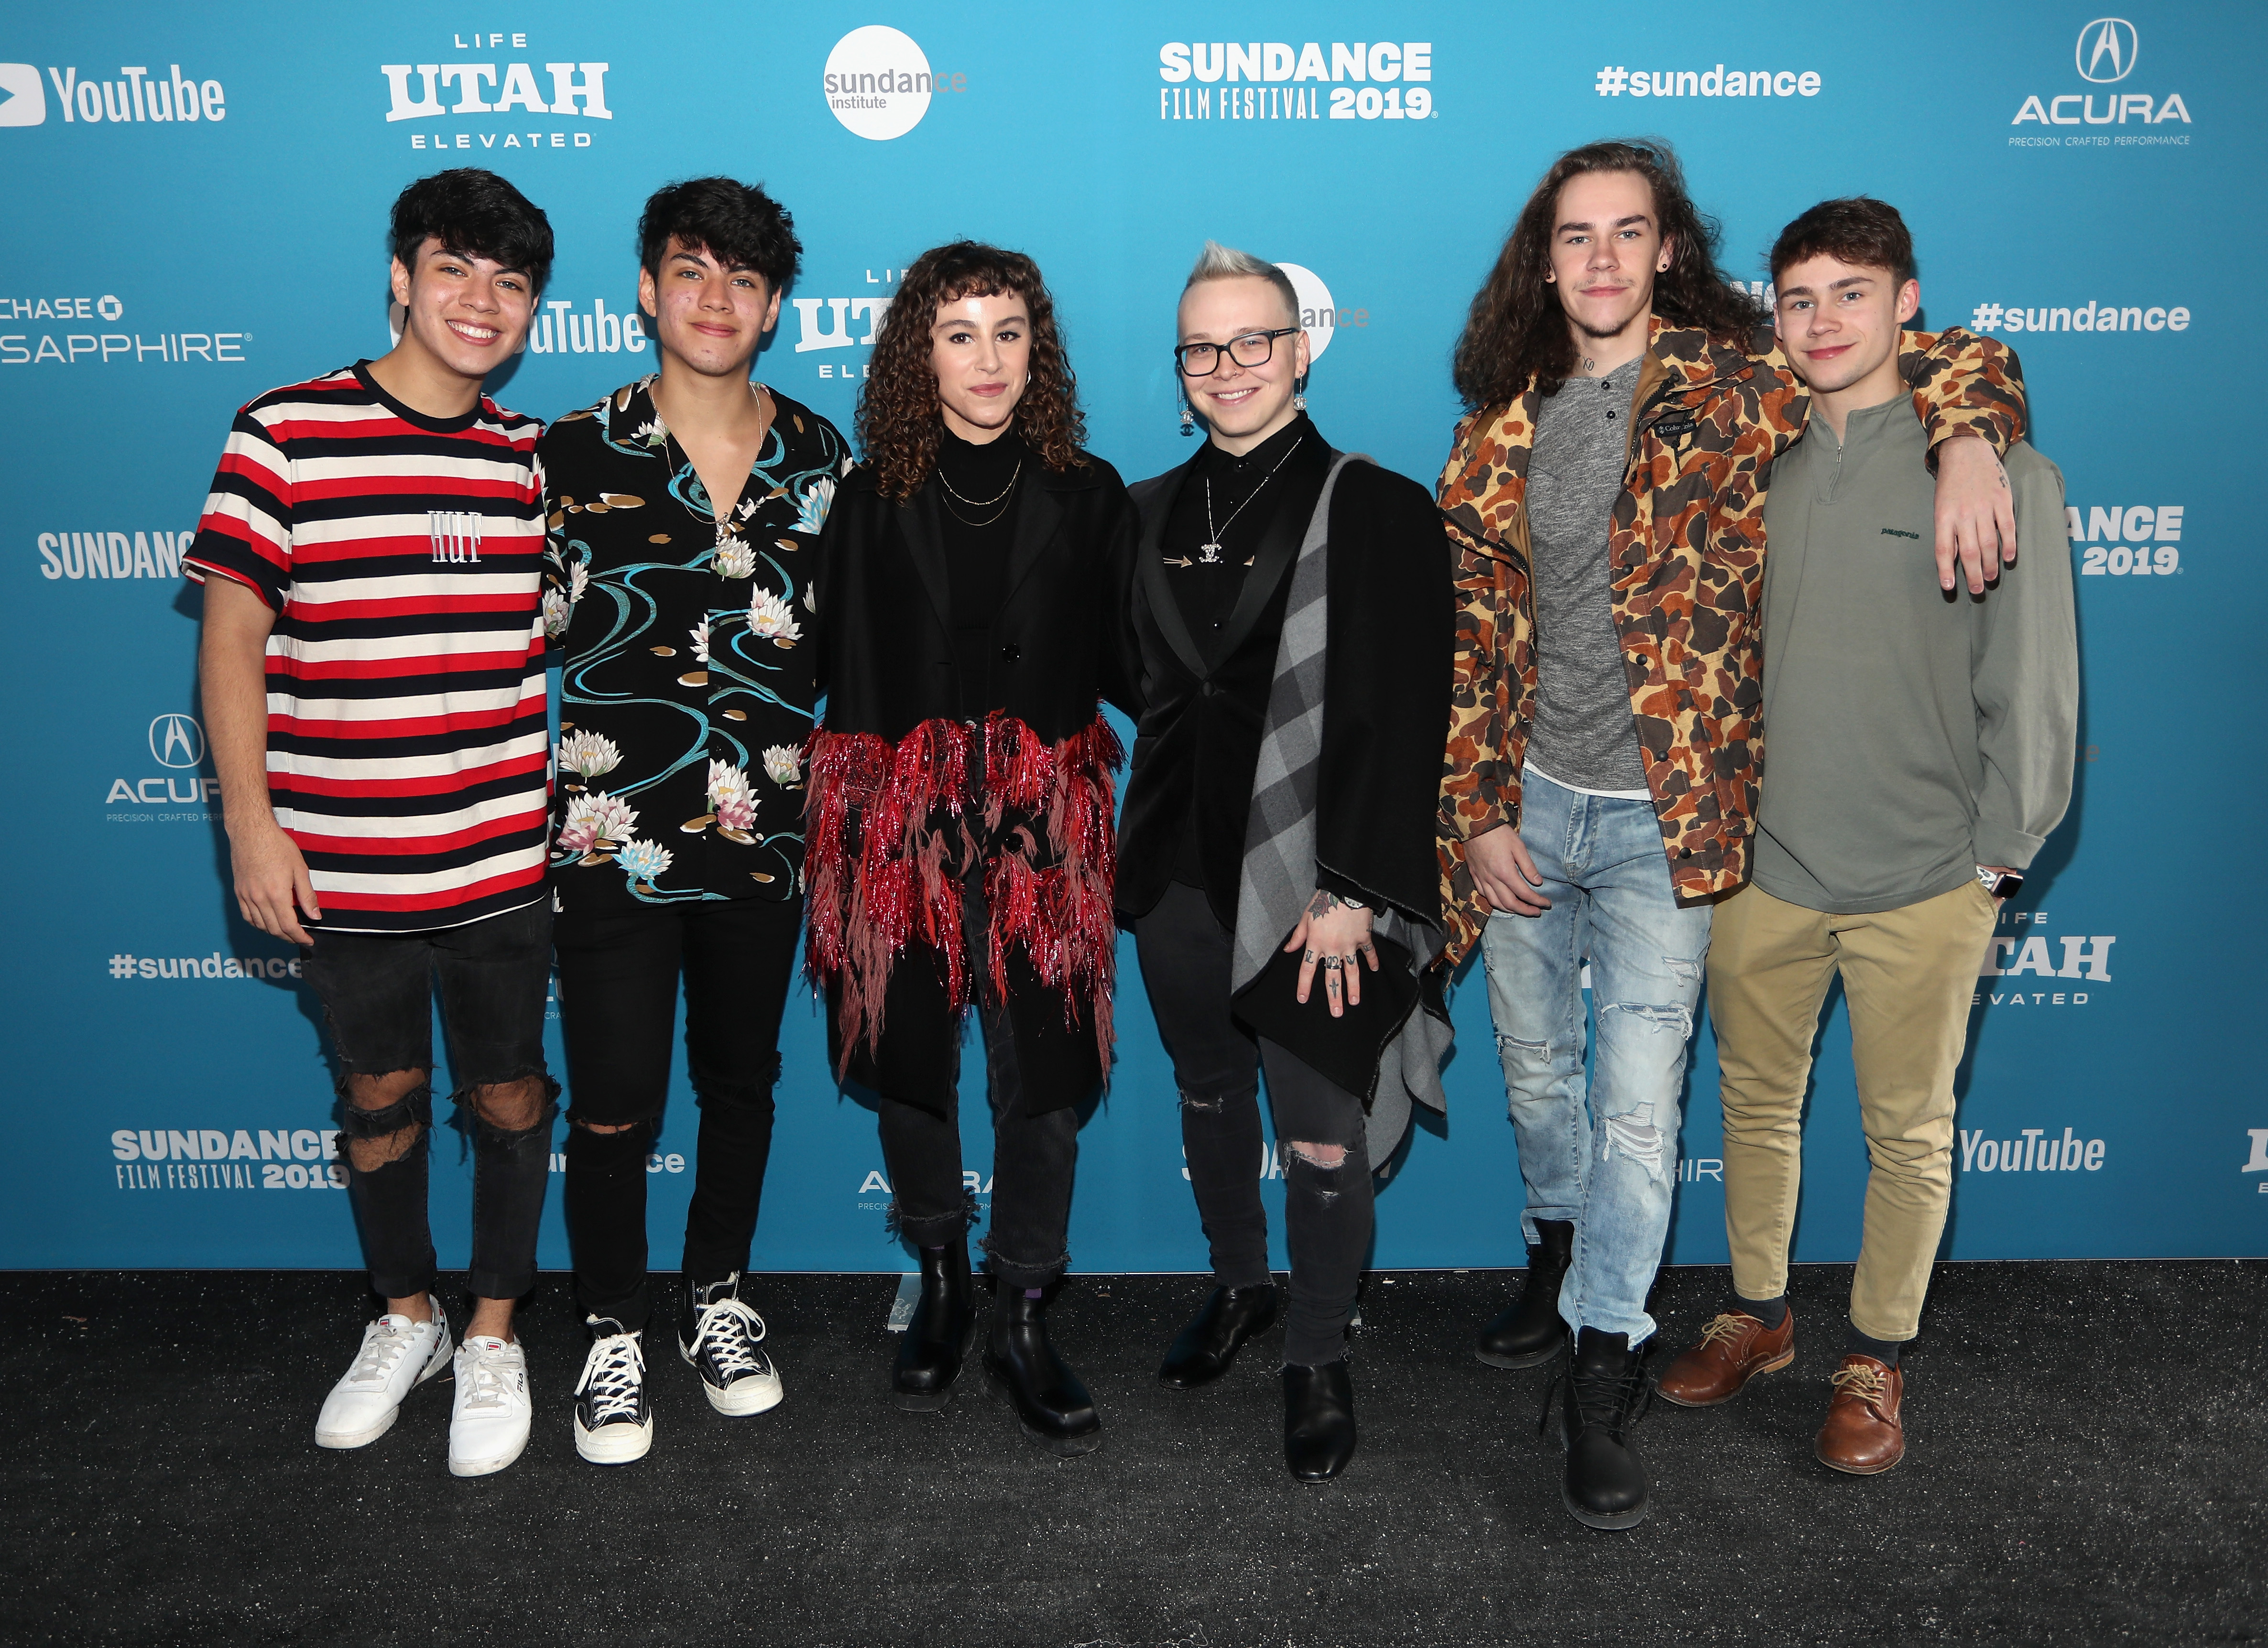 Director Liza Mandelup (third from left) poses with film subjects Jovani Jara, Julian Jara, Michael Weist, Donavan Tester and Austyn Tester at the  Jawline  Premiere during the 2019 Sundance Film Festival at Library Center Theater on January 28, 2019 in Park City, Utah.